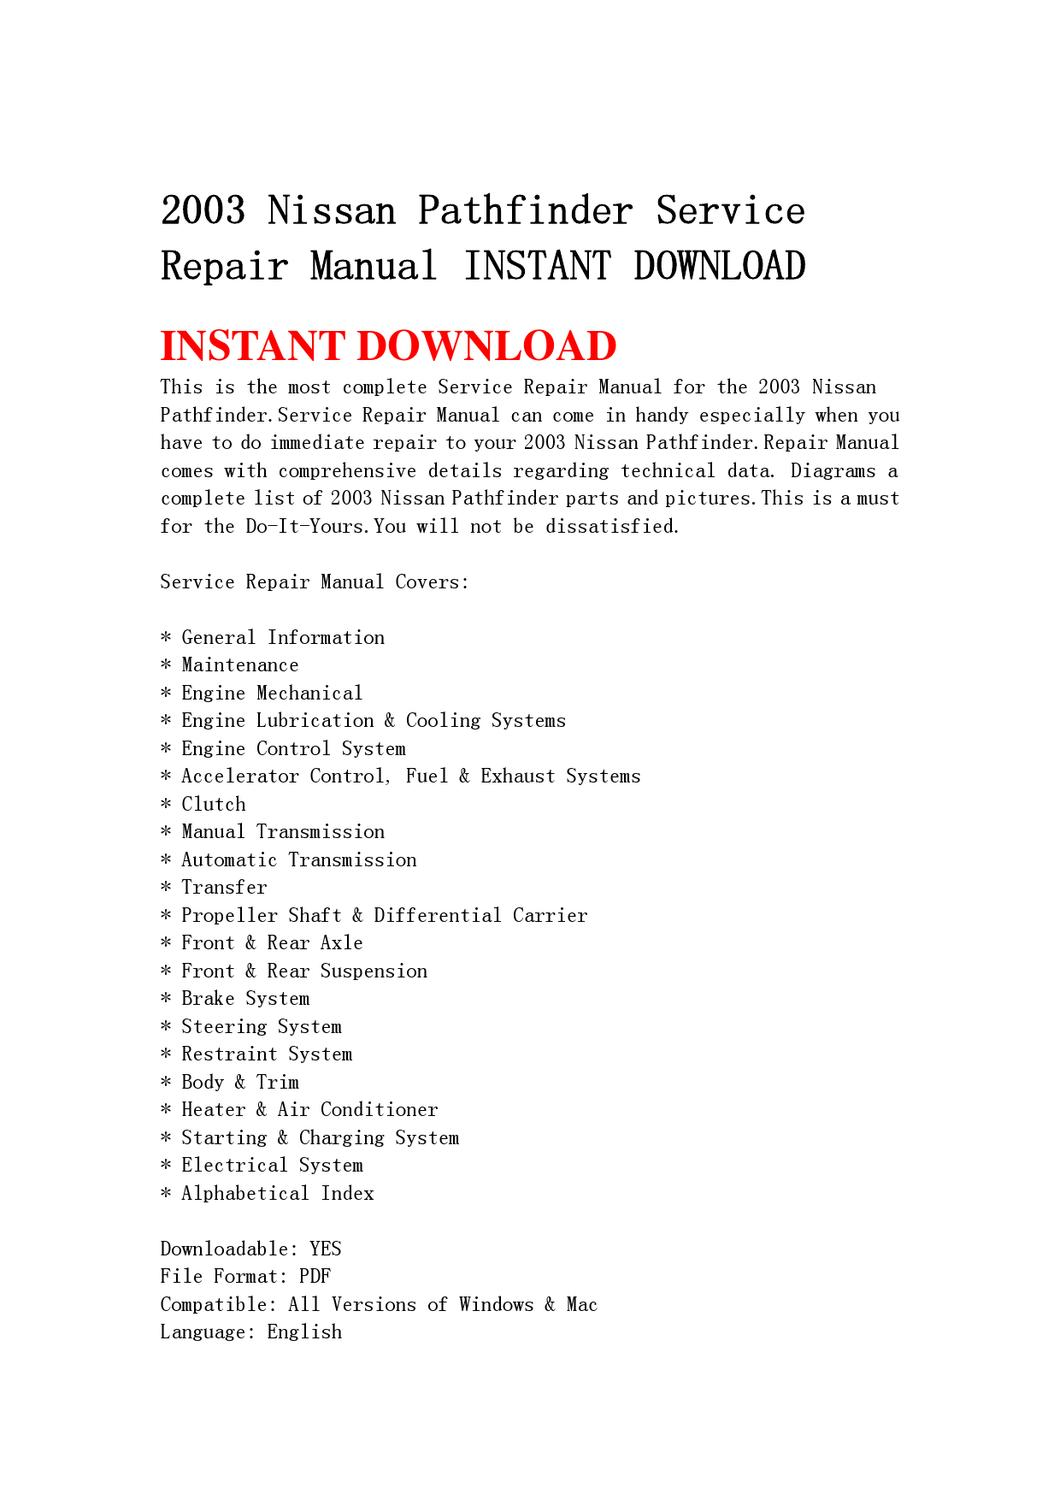 2003 Nissan Pathfinder Service Repair Manual INSTANT DOWNLOAD by yu jiew -  issuu